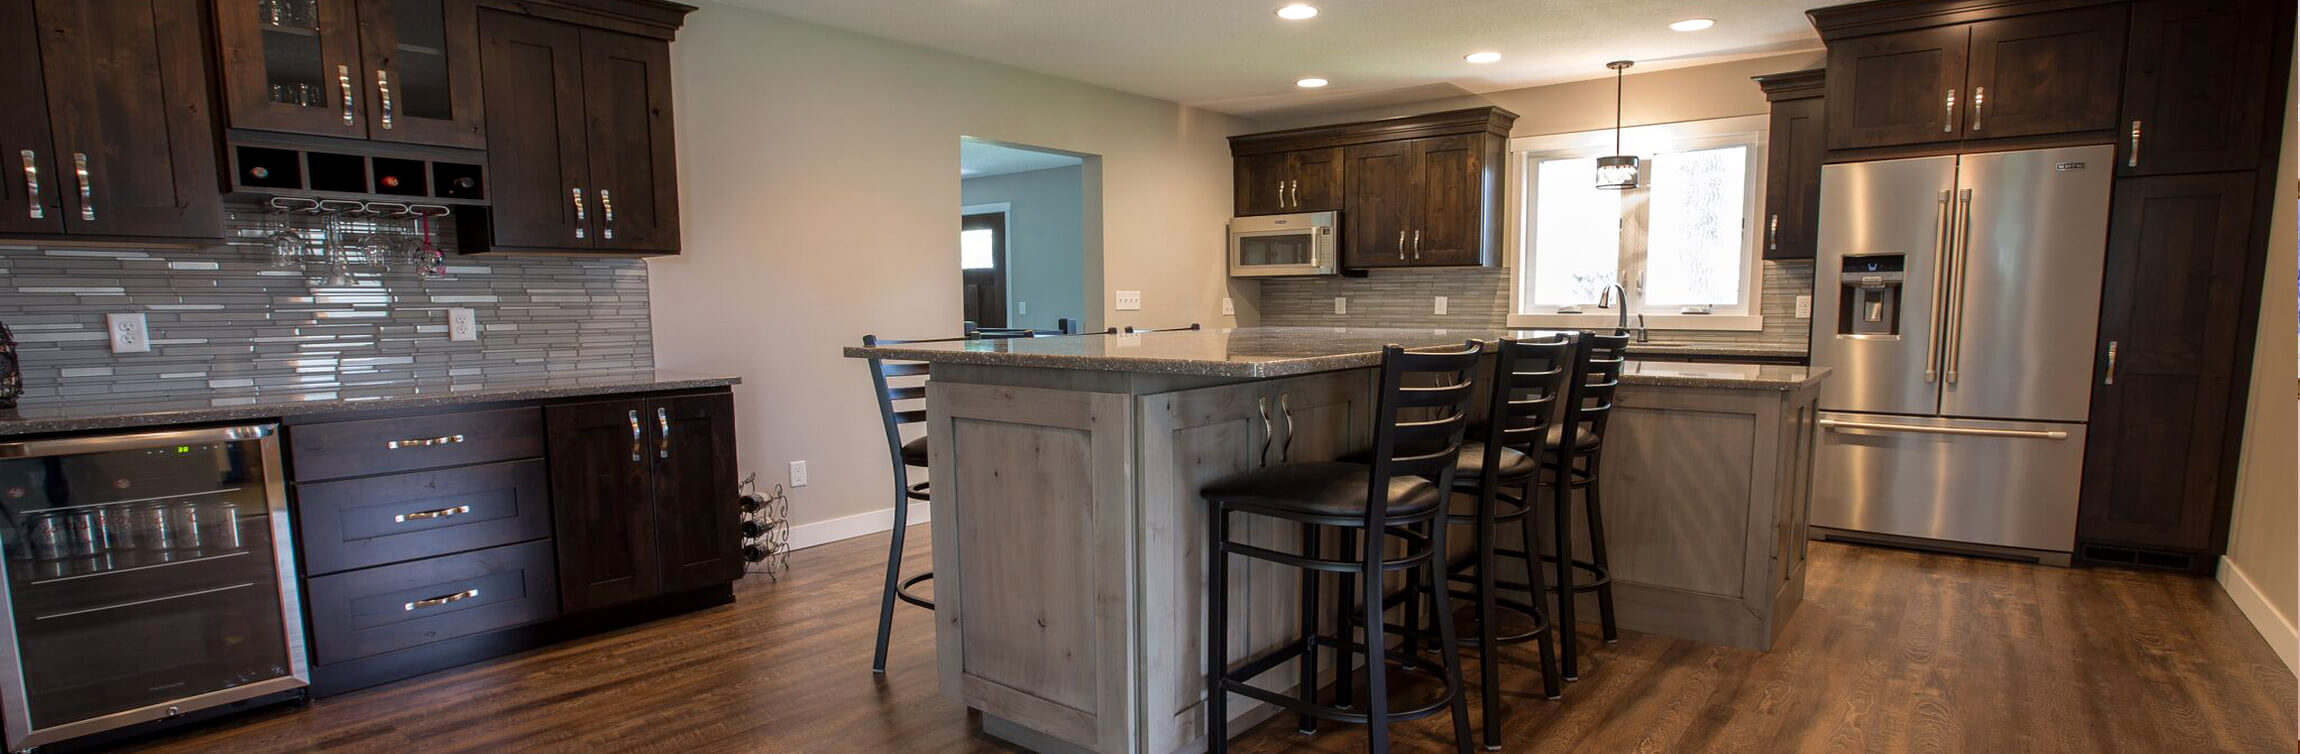 Custom Residential Kitchen & Bar Station featuring dark-stained solid wood cabinets, glass tile backsplash, large center island, stone countertops, and hardwood flooring